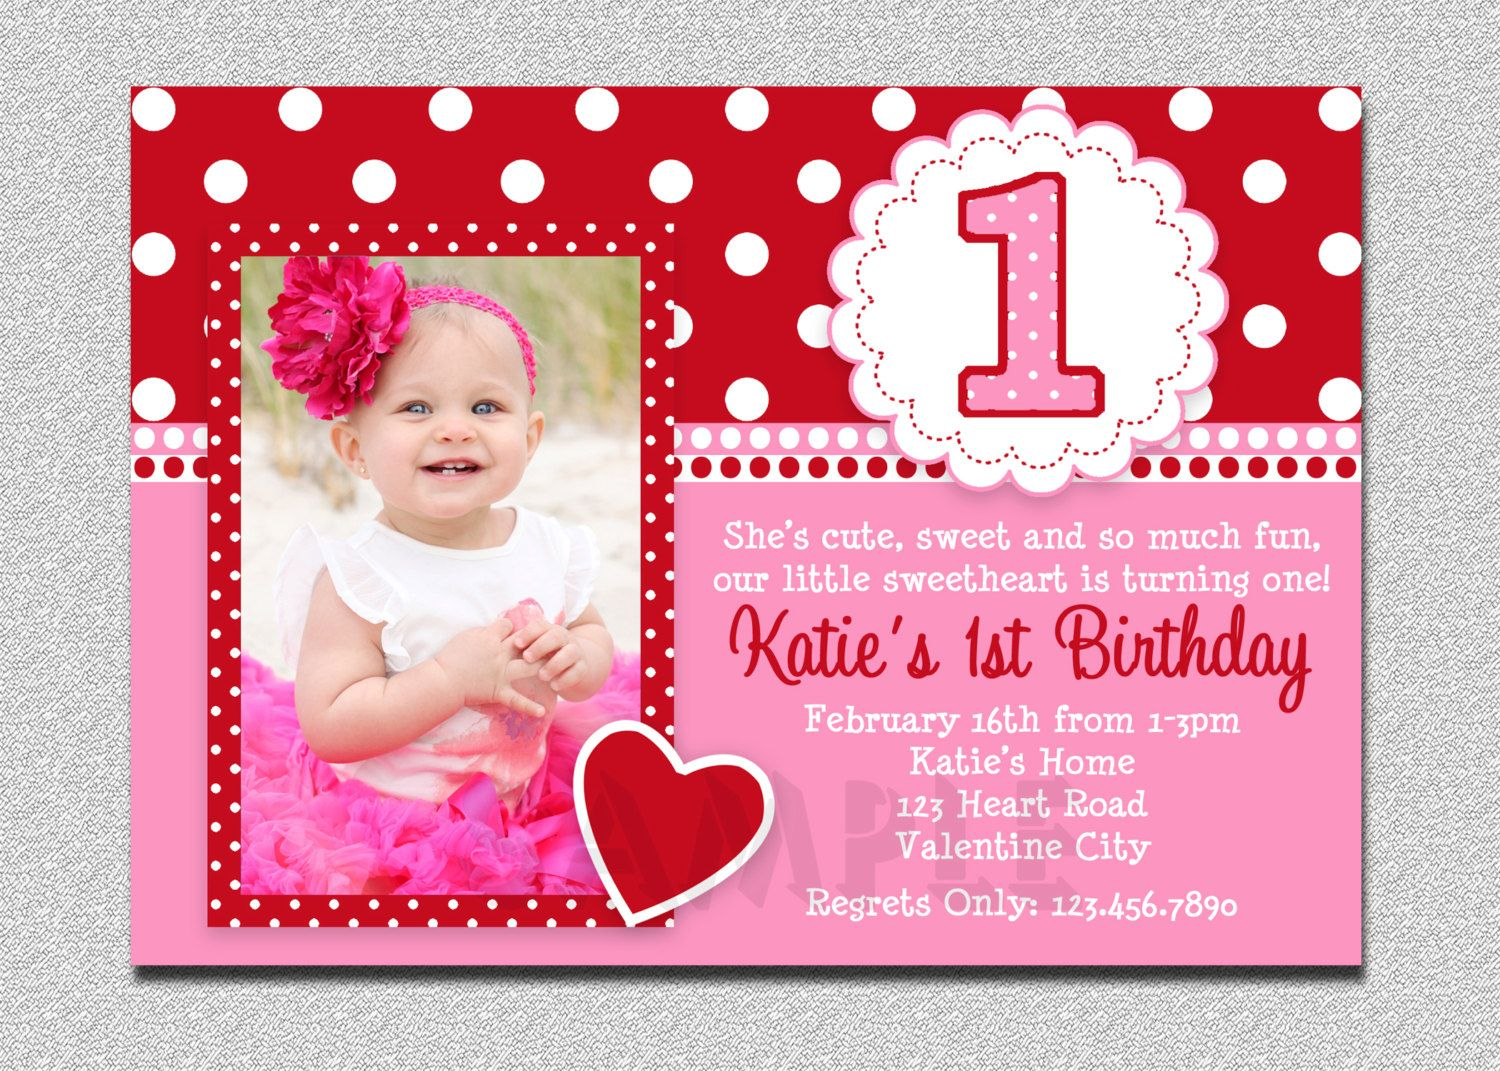 valentines birthday invitation 1st birthday valentines birthday